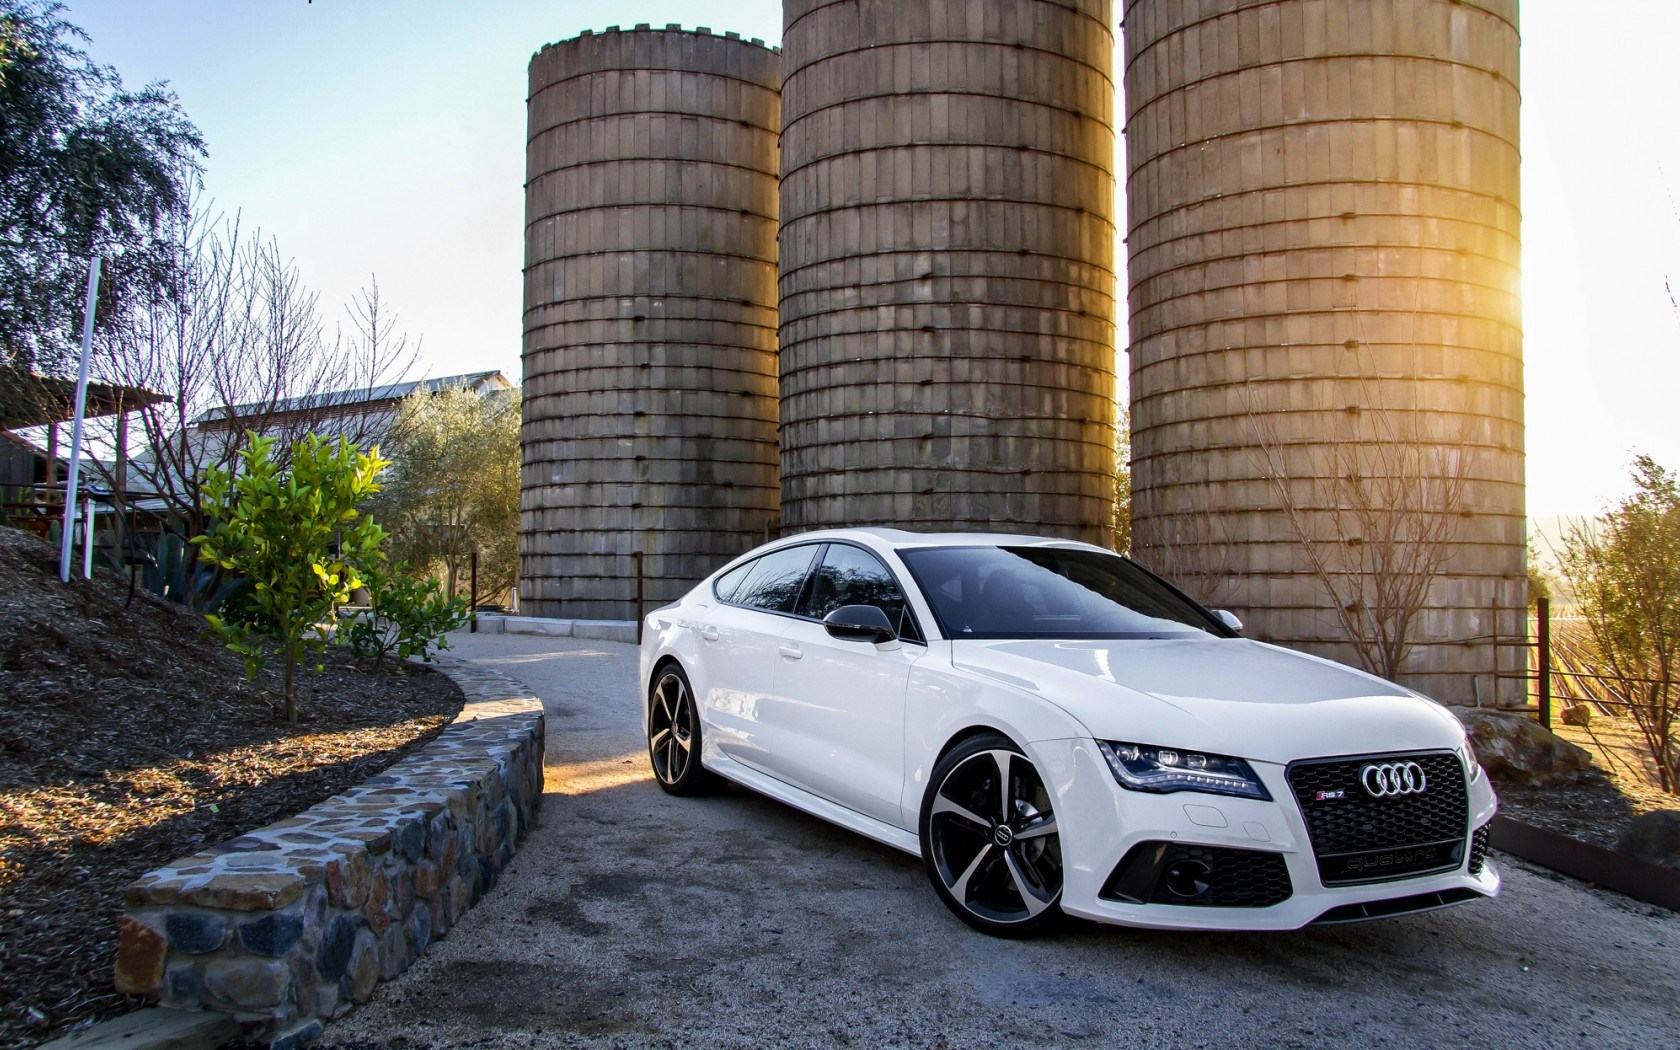 Awesome Audi RS7